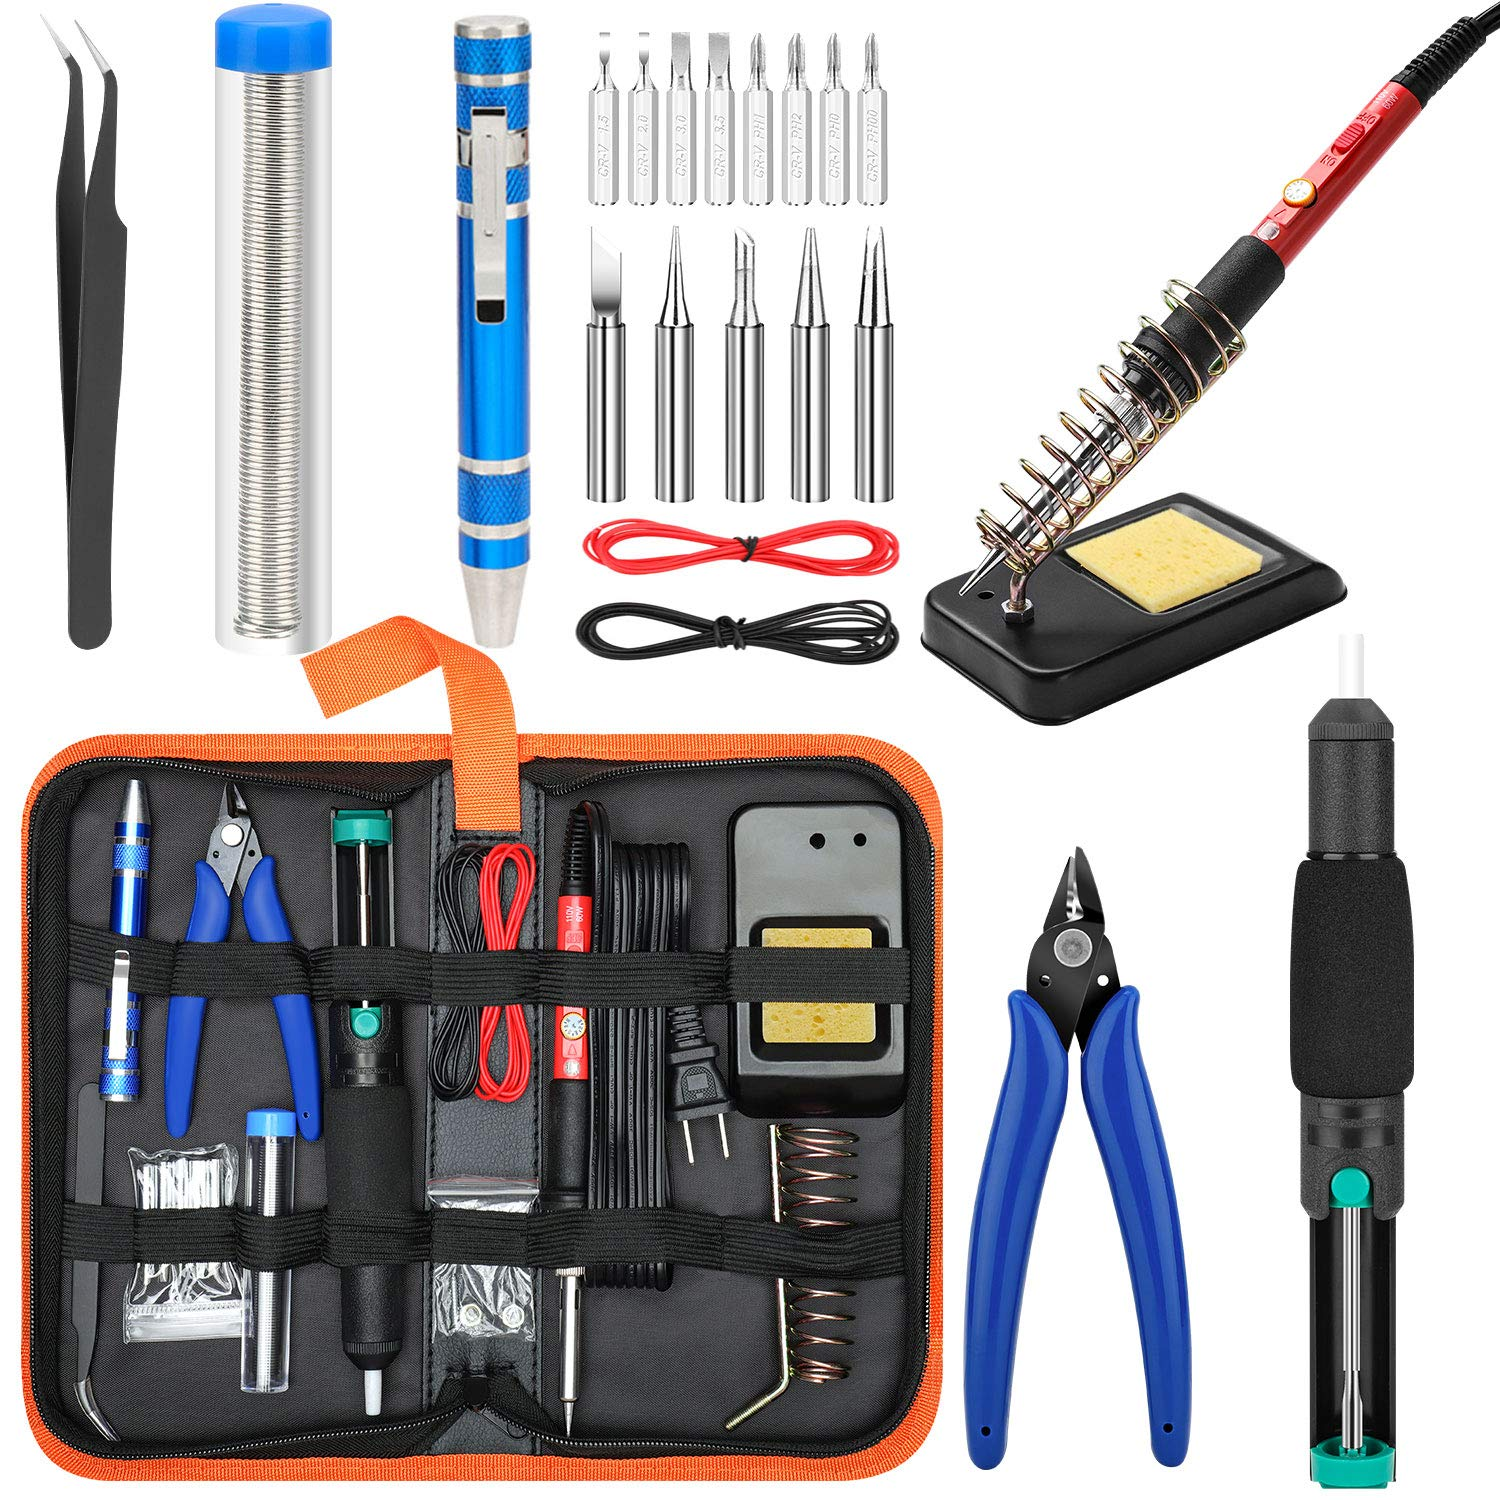 Soldering Iron Kit Electronics [Upgraded], Yome 15-in-1 60w Adjustable Temperature Soldering Iron with ON/OFF Switch, 5pcs Soldering Iron Tips, DE-soldering Pump, Wire cutters, screwdriver, Stand by Yome